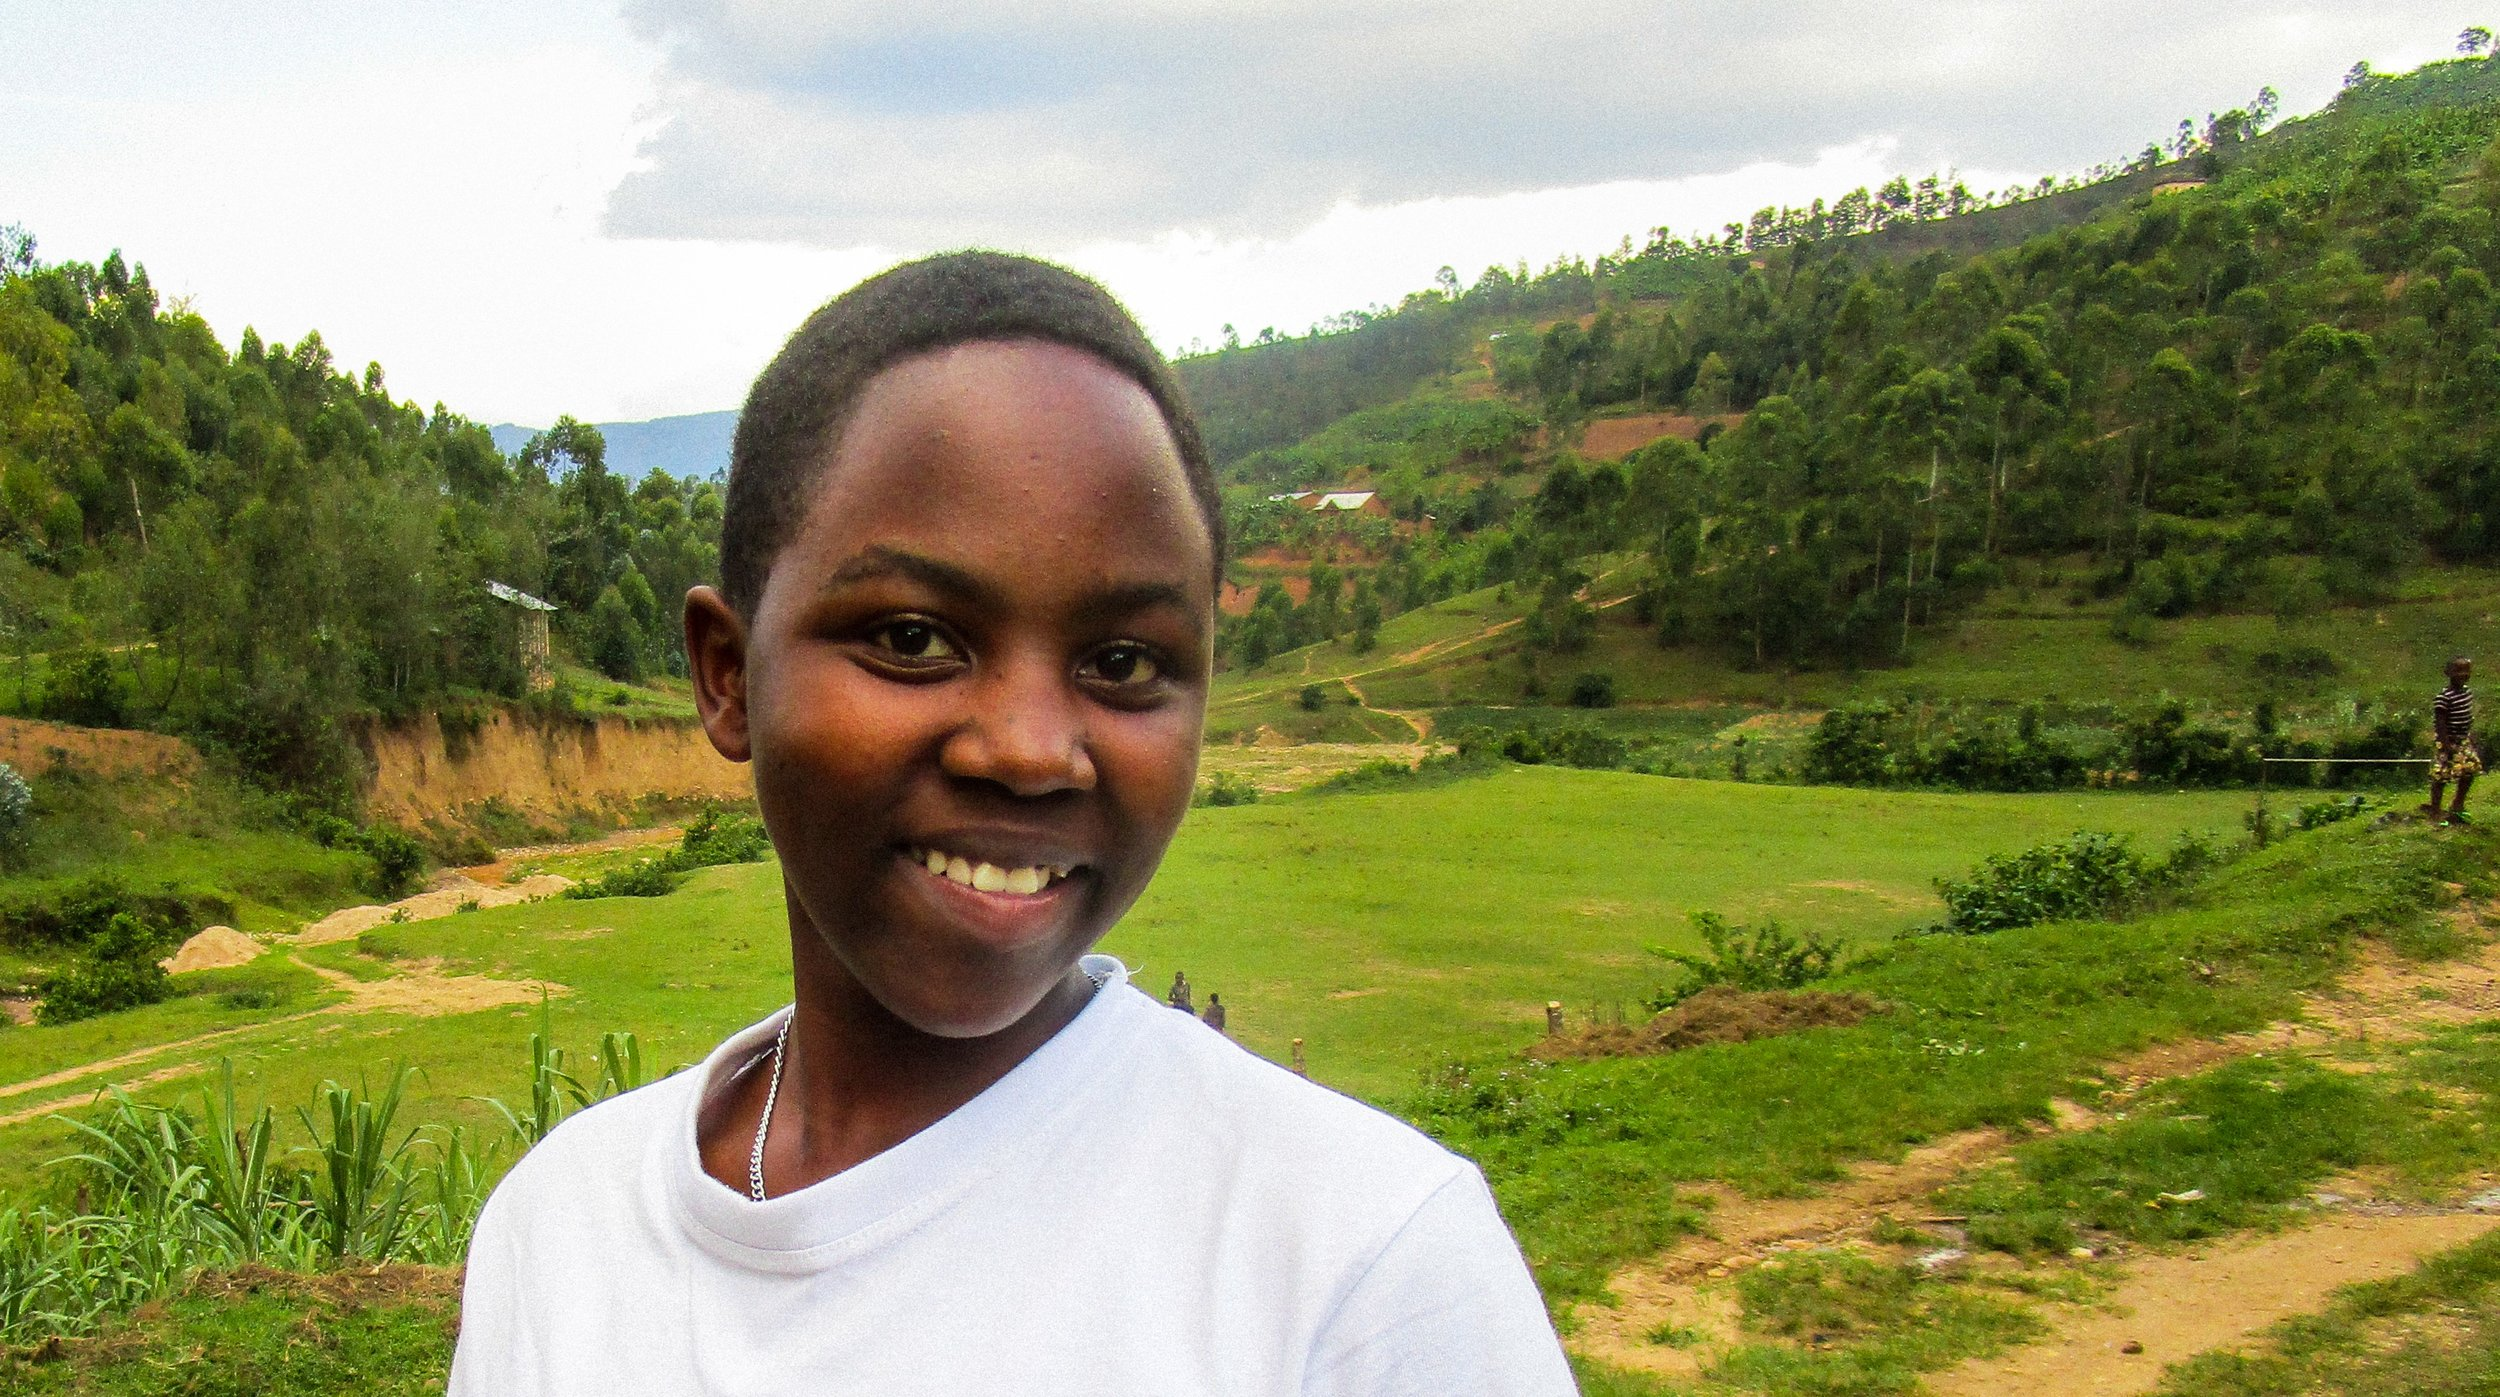 """""""The best skill we get is self-confidence... Now even if our project fails, we can try again."""" - - Fausta, Secondary Student, Rwanda"""